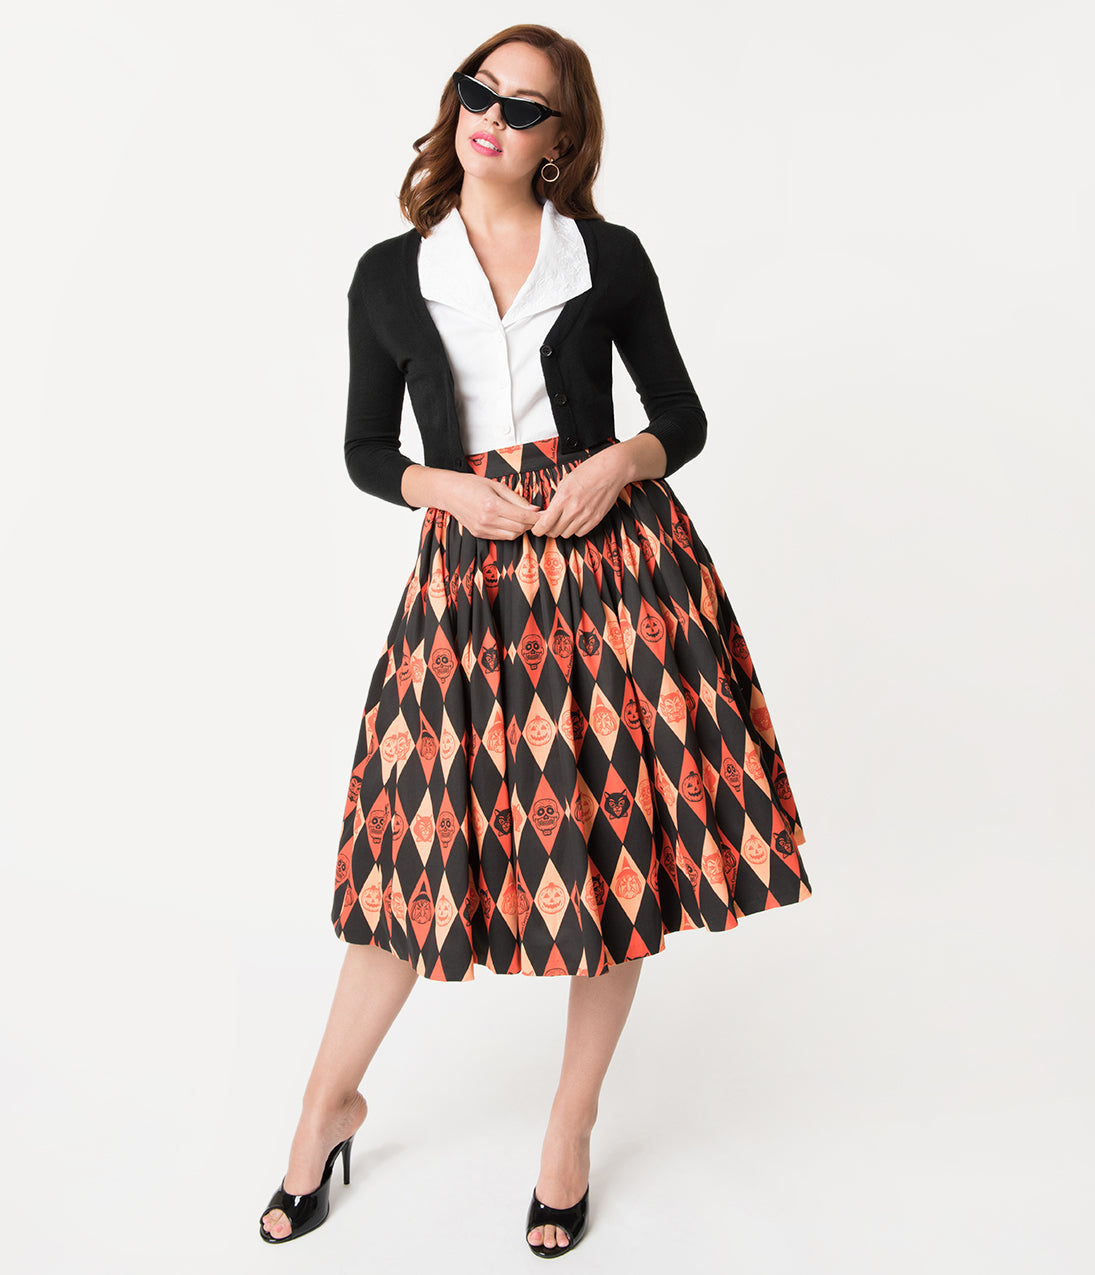 Retro Skirts: Vintage, Pencil, Circle, & Plus Sizes Vixen By Micheline Pitt Orange Ben Cooper Trick R Treat Skirt $100.00 AT vintagedancer.com